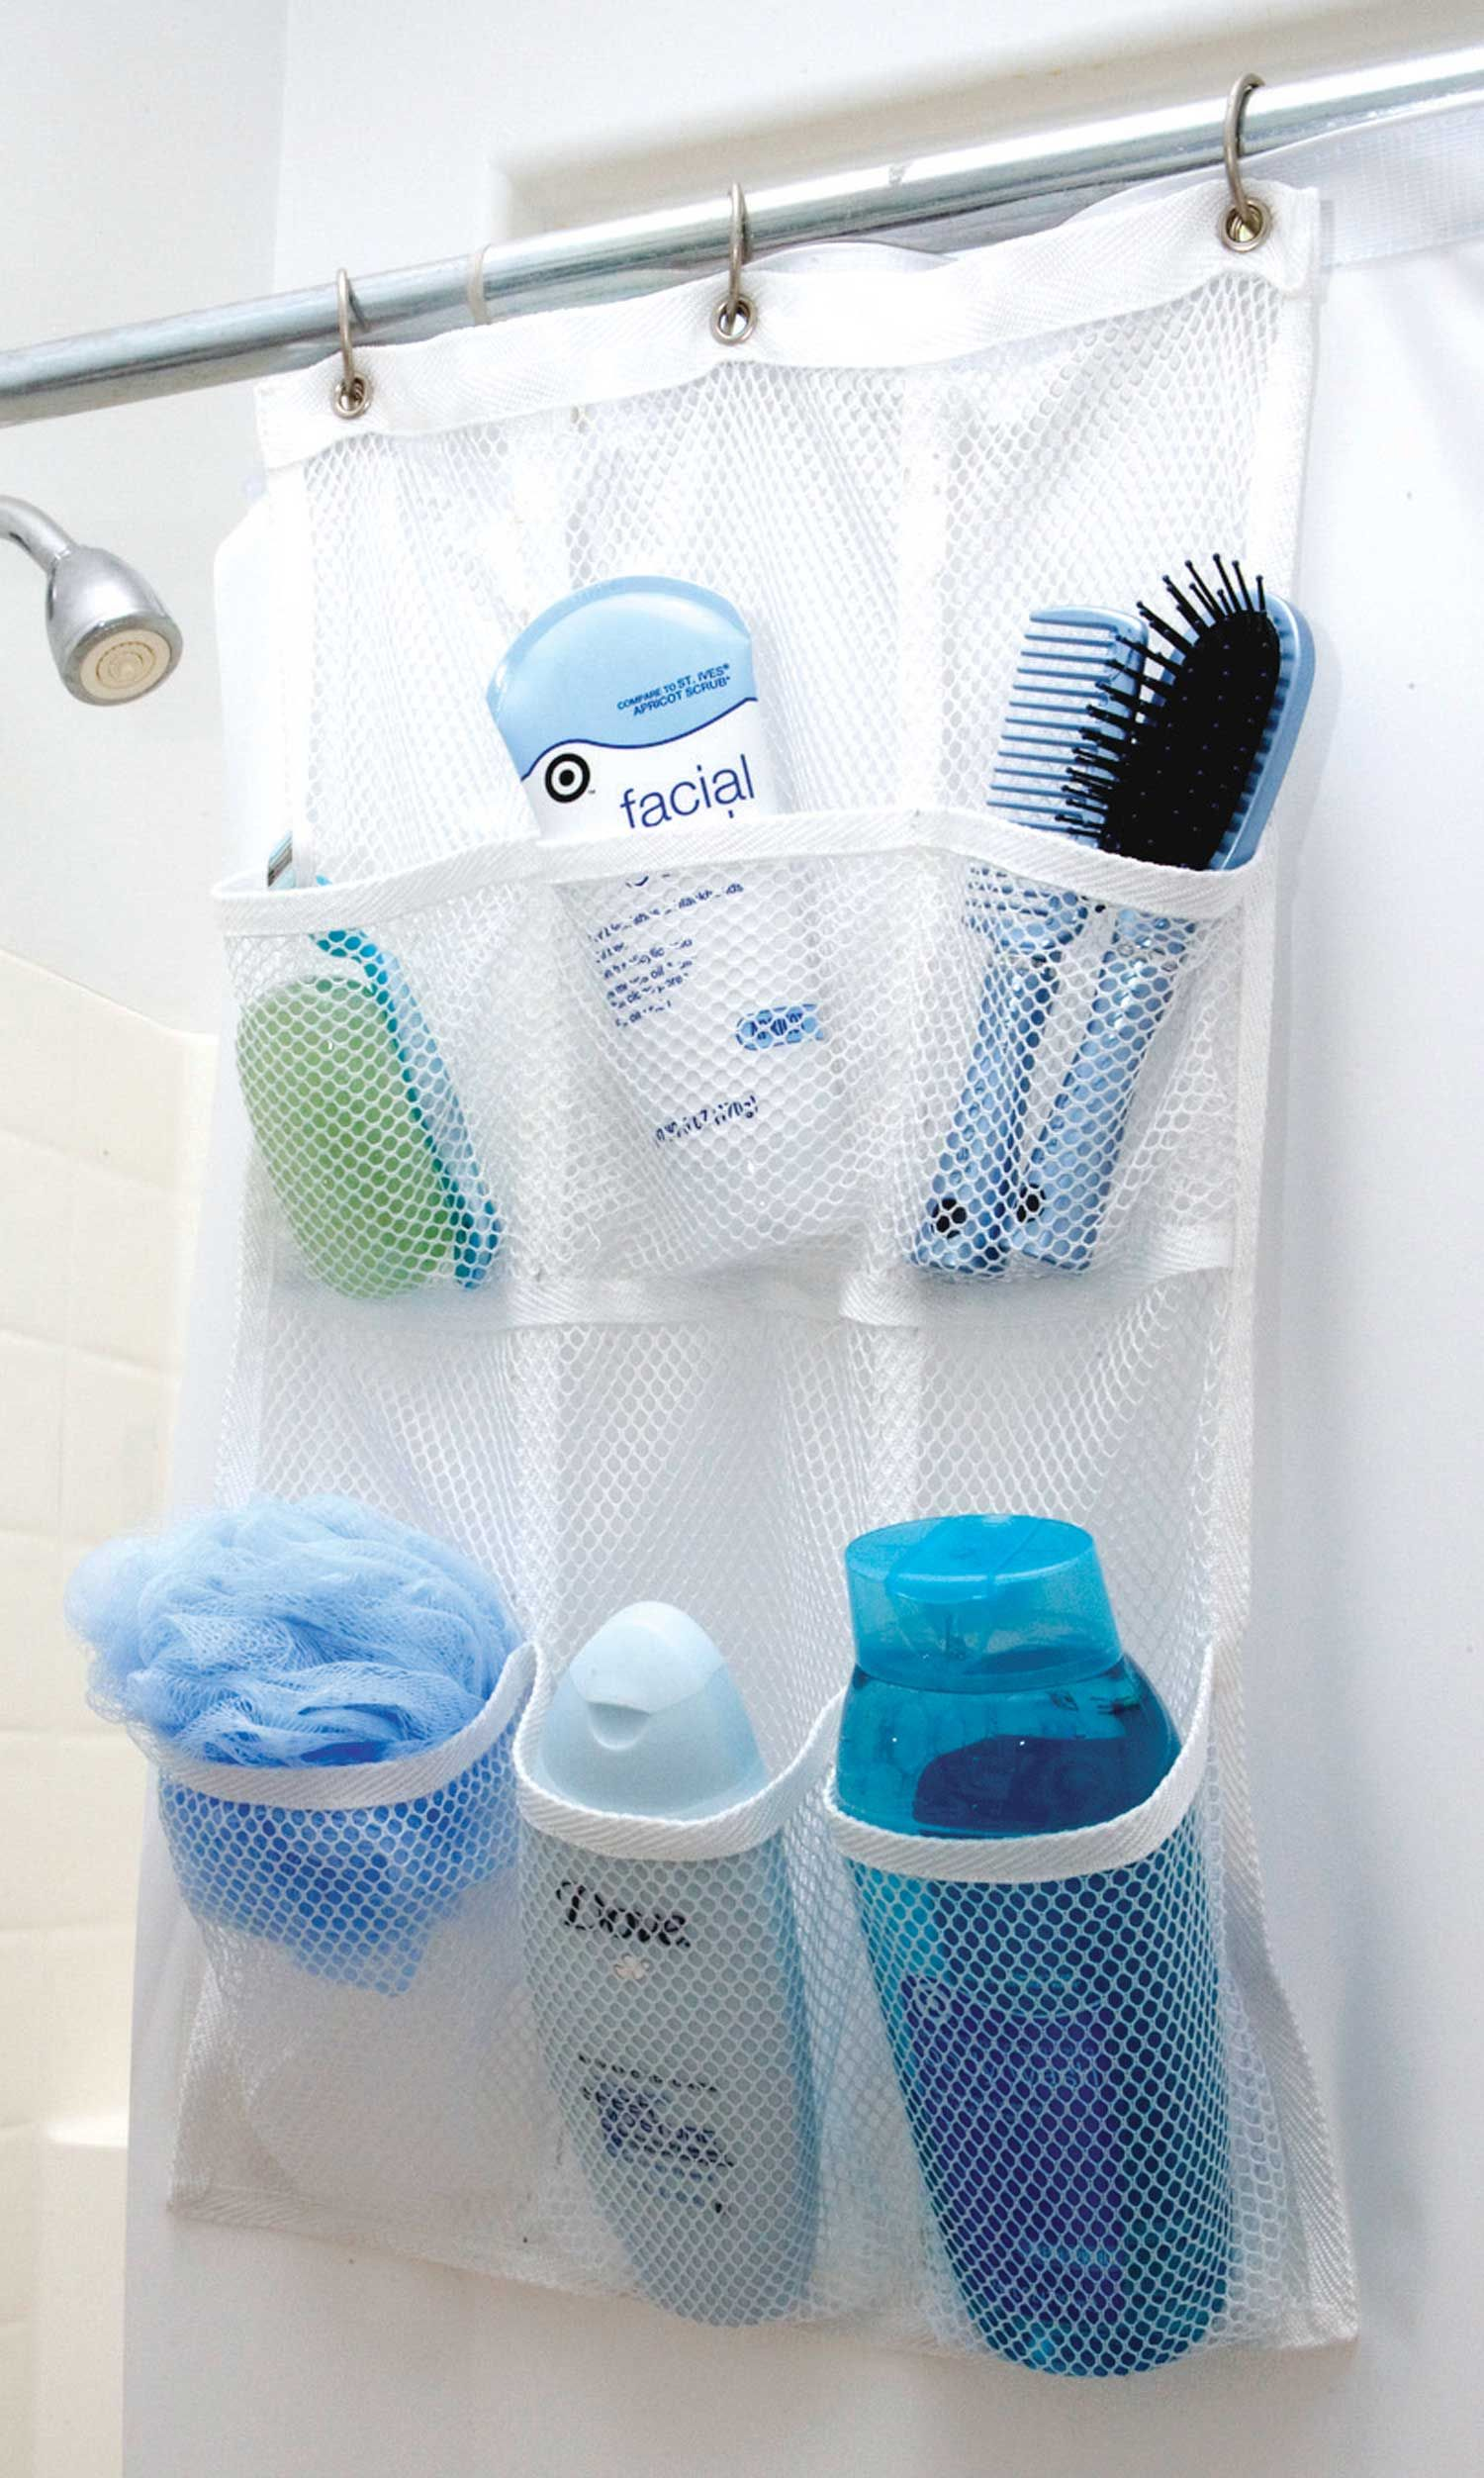 Shower Pocket Organizer | RVing/Camping | Pinterest | Pocket ...